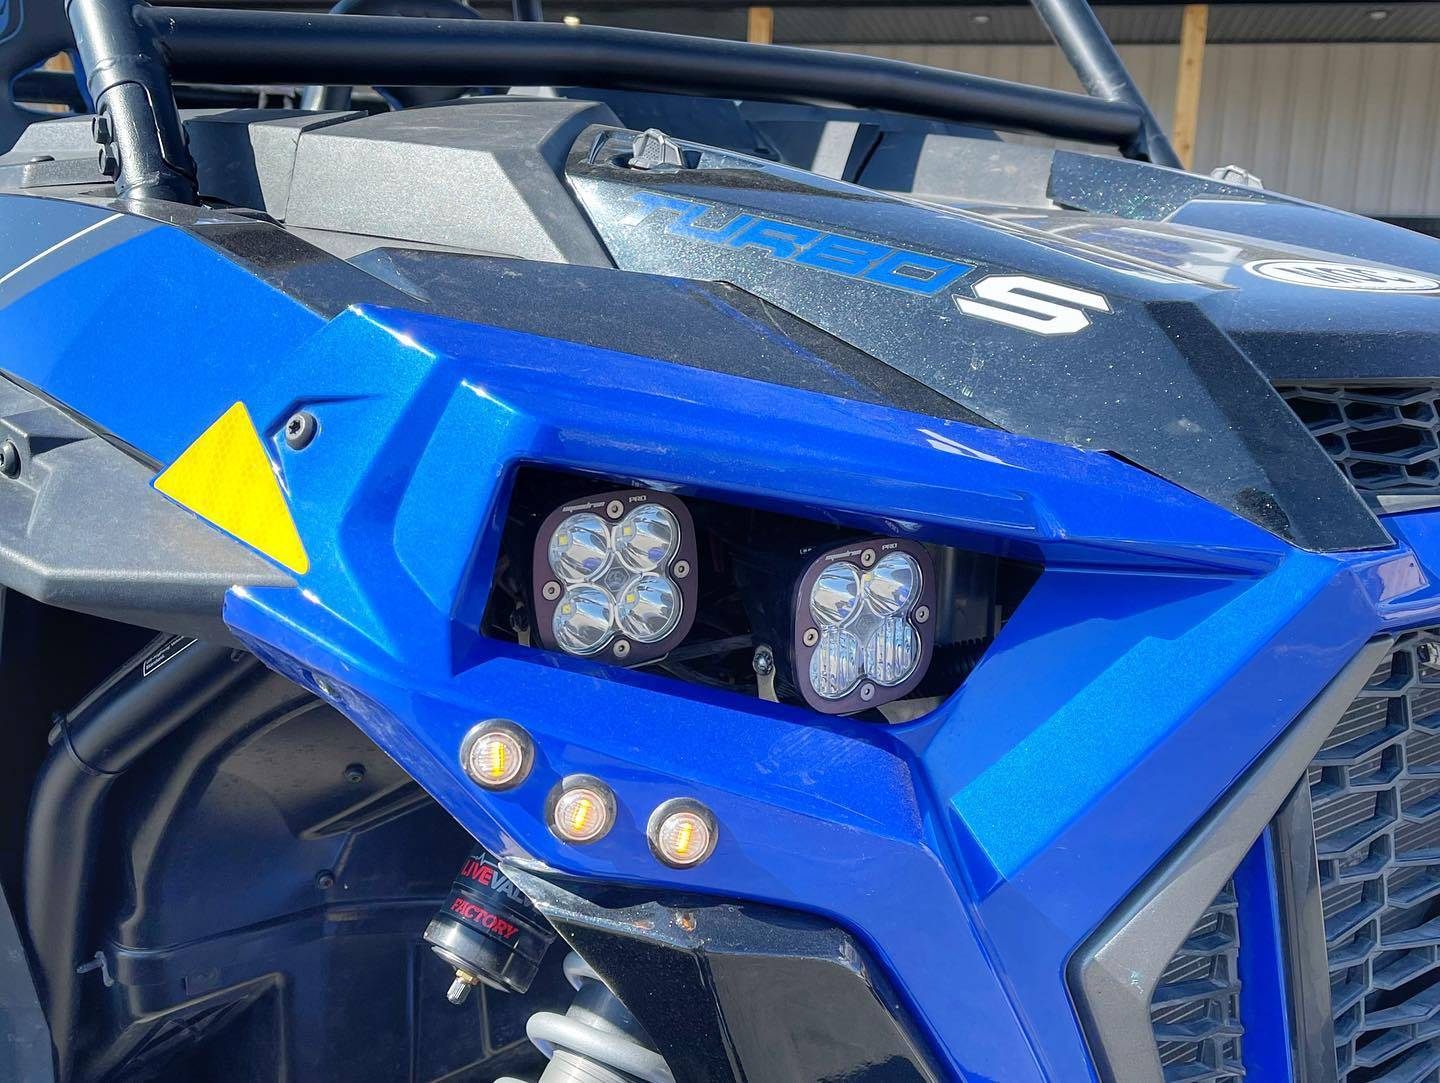 2019 Polaris RZR XP Turbo S in Cedar City, Utah - Photo 5